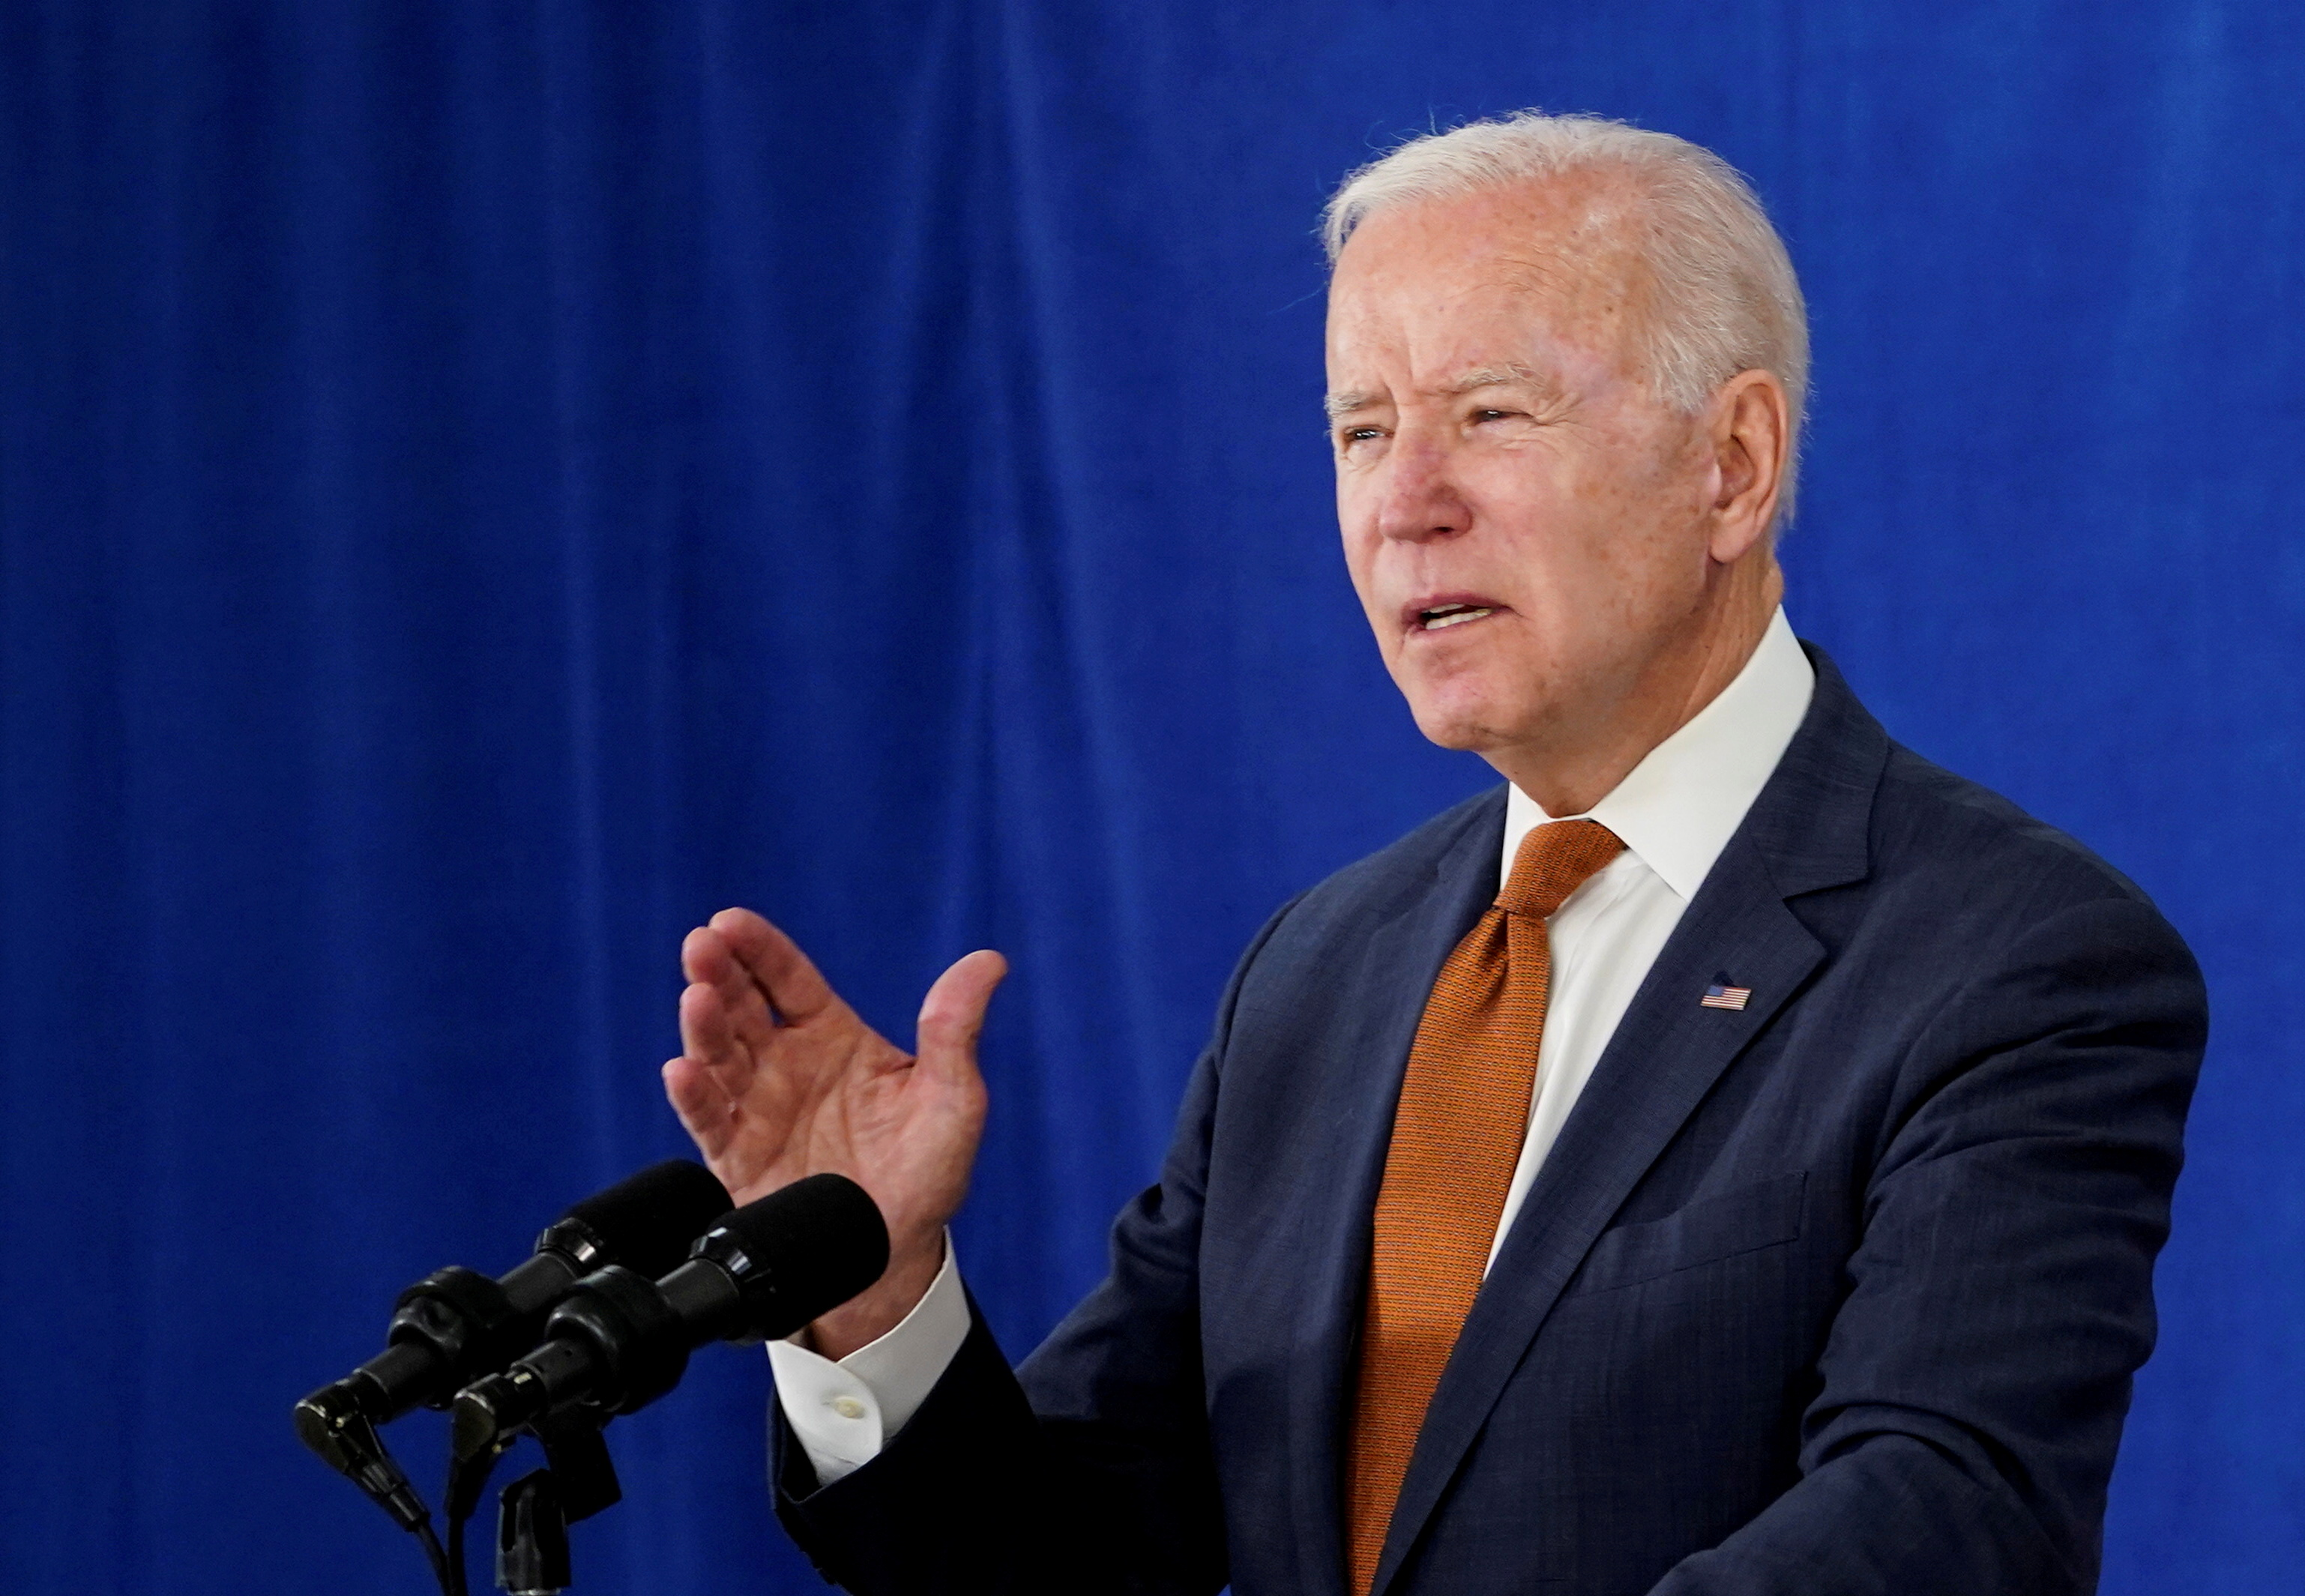 U.S. President Joe Biden delivers remarks on the May jobs report after U.S. employers boosted hiring amid the easing coronavirus disease (COVID-19) pandemic, at the Rehoboth Beach Convention Center in Rehoboth Beach, Delaware, U.S., June 4, 2021. REUTERS/Kevin Lamarque/File Photo